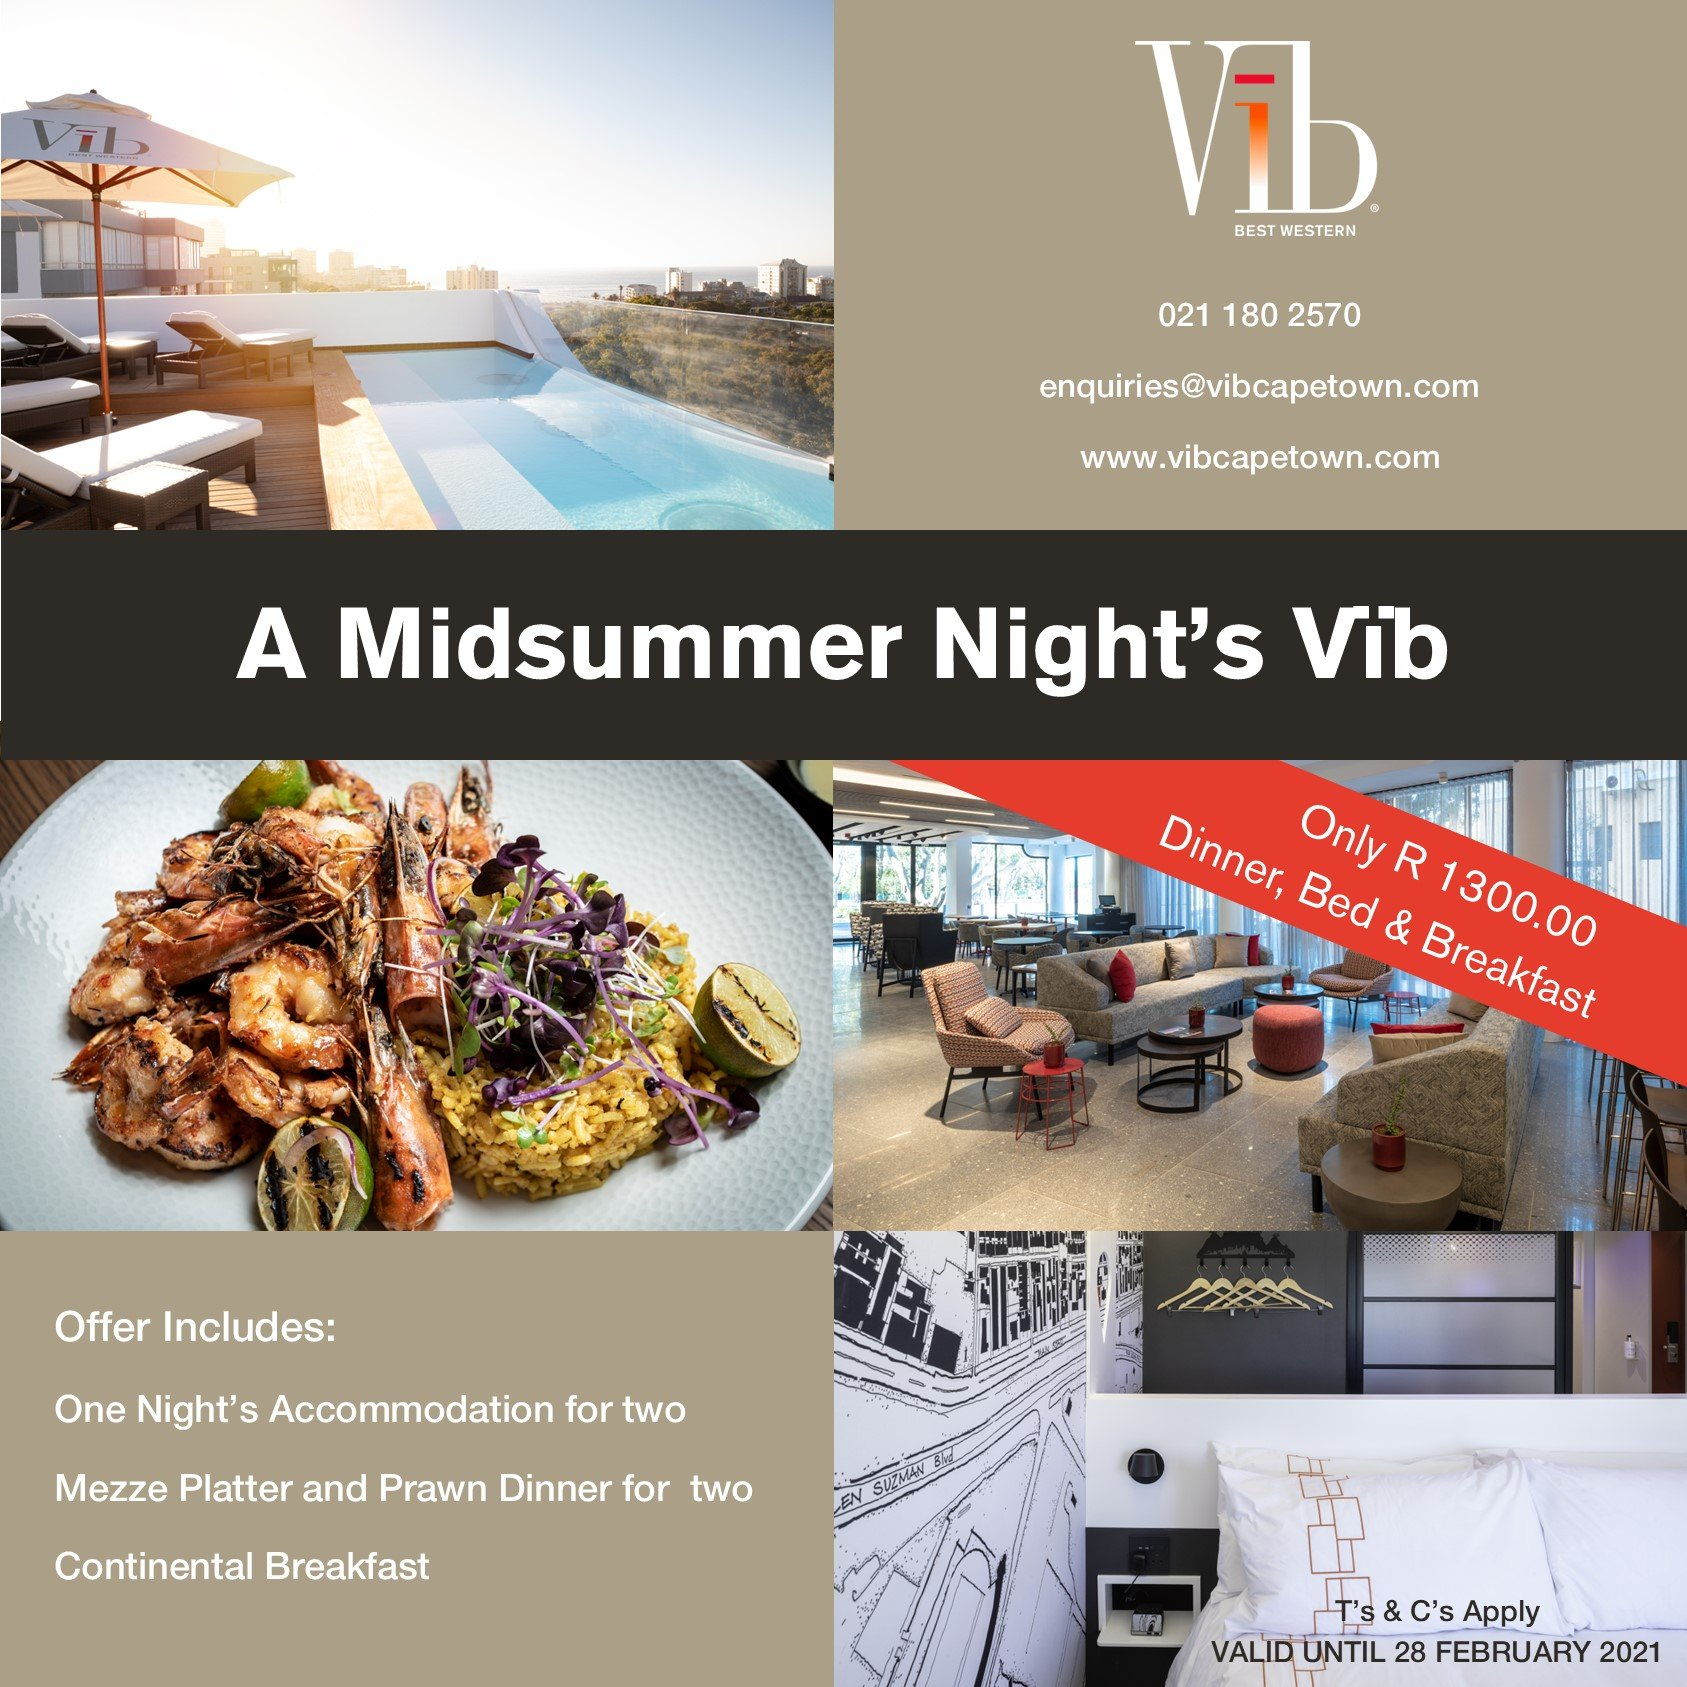 Vïb Hotel Valentine's Staycation Special Offer Sonia Cabano blog eatdrinkcapetown